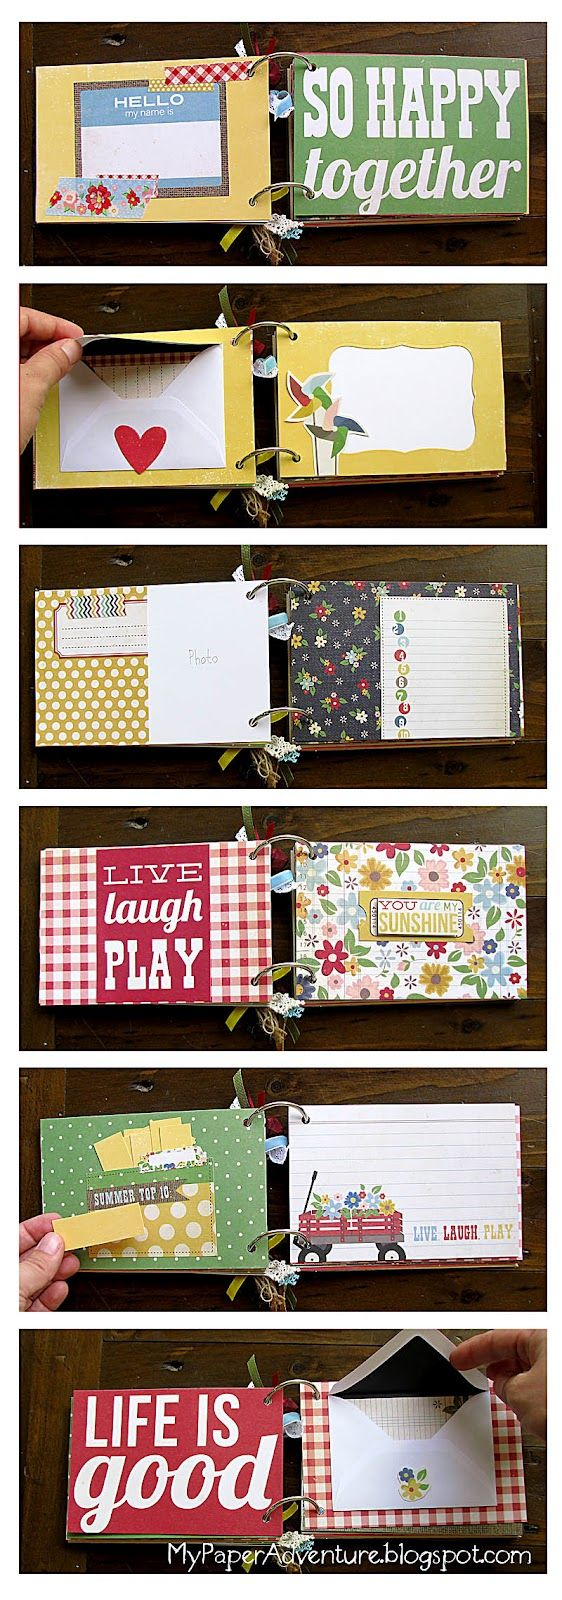 mypaperadventure - Travel mini-album - Simple Stories - Summer Fresh Collection - easy album for 4x6 pics